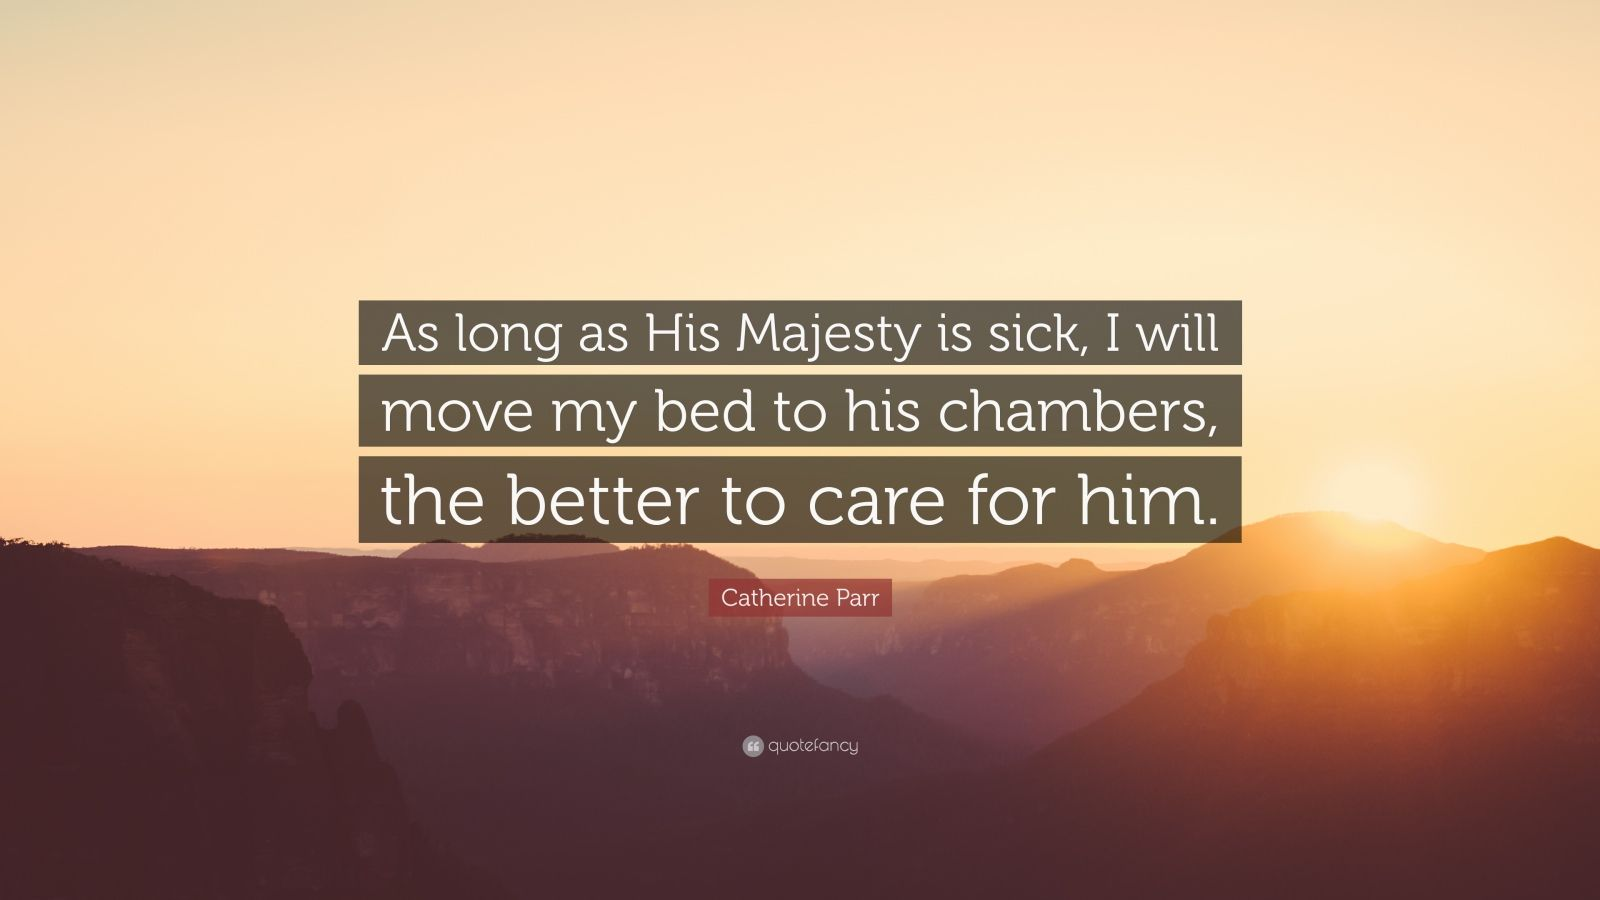 """Catherine Parr Quote: """"As long as His Majesty is sick, I will move my bed to his chambers, the better to care for him."""""""